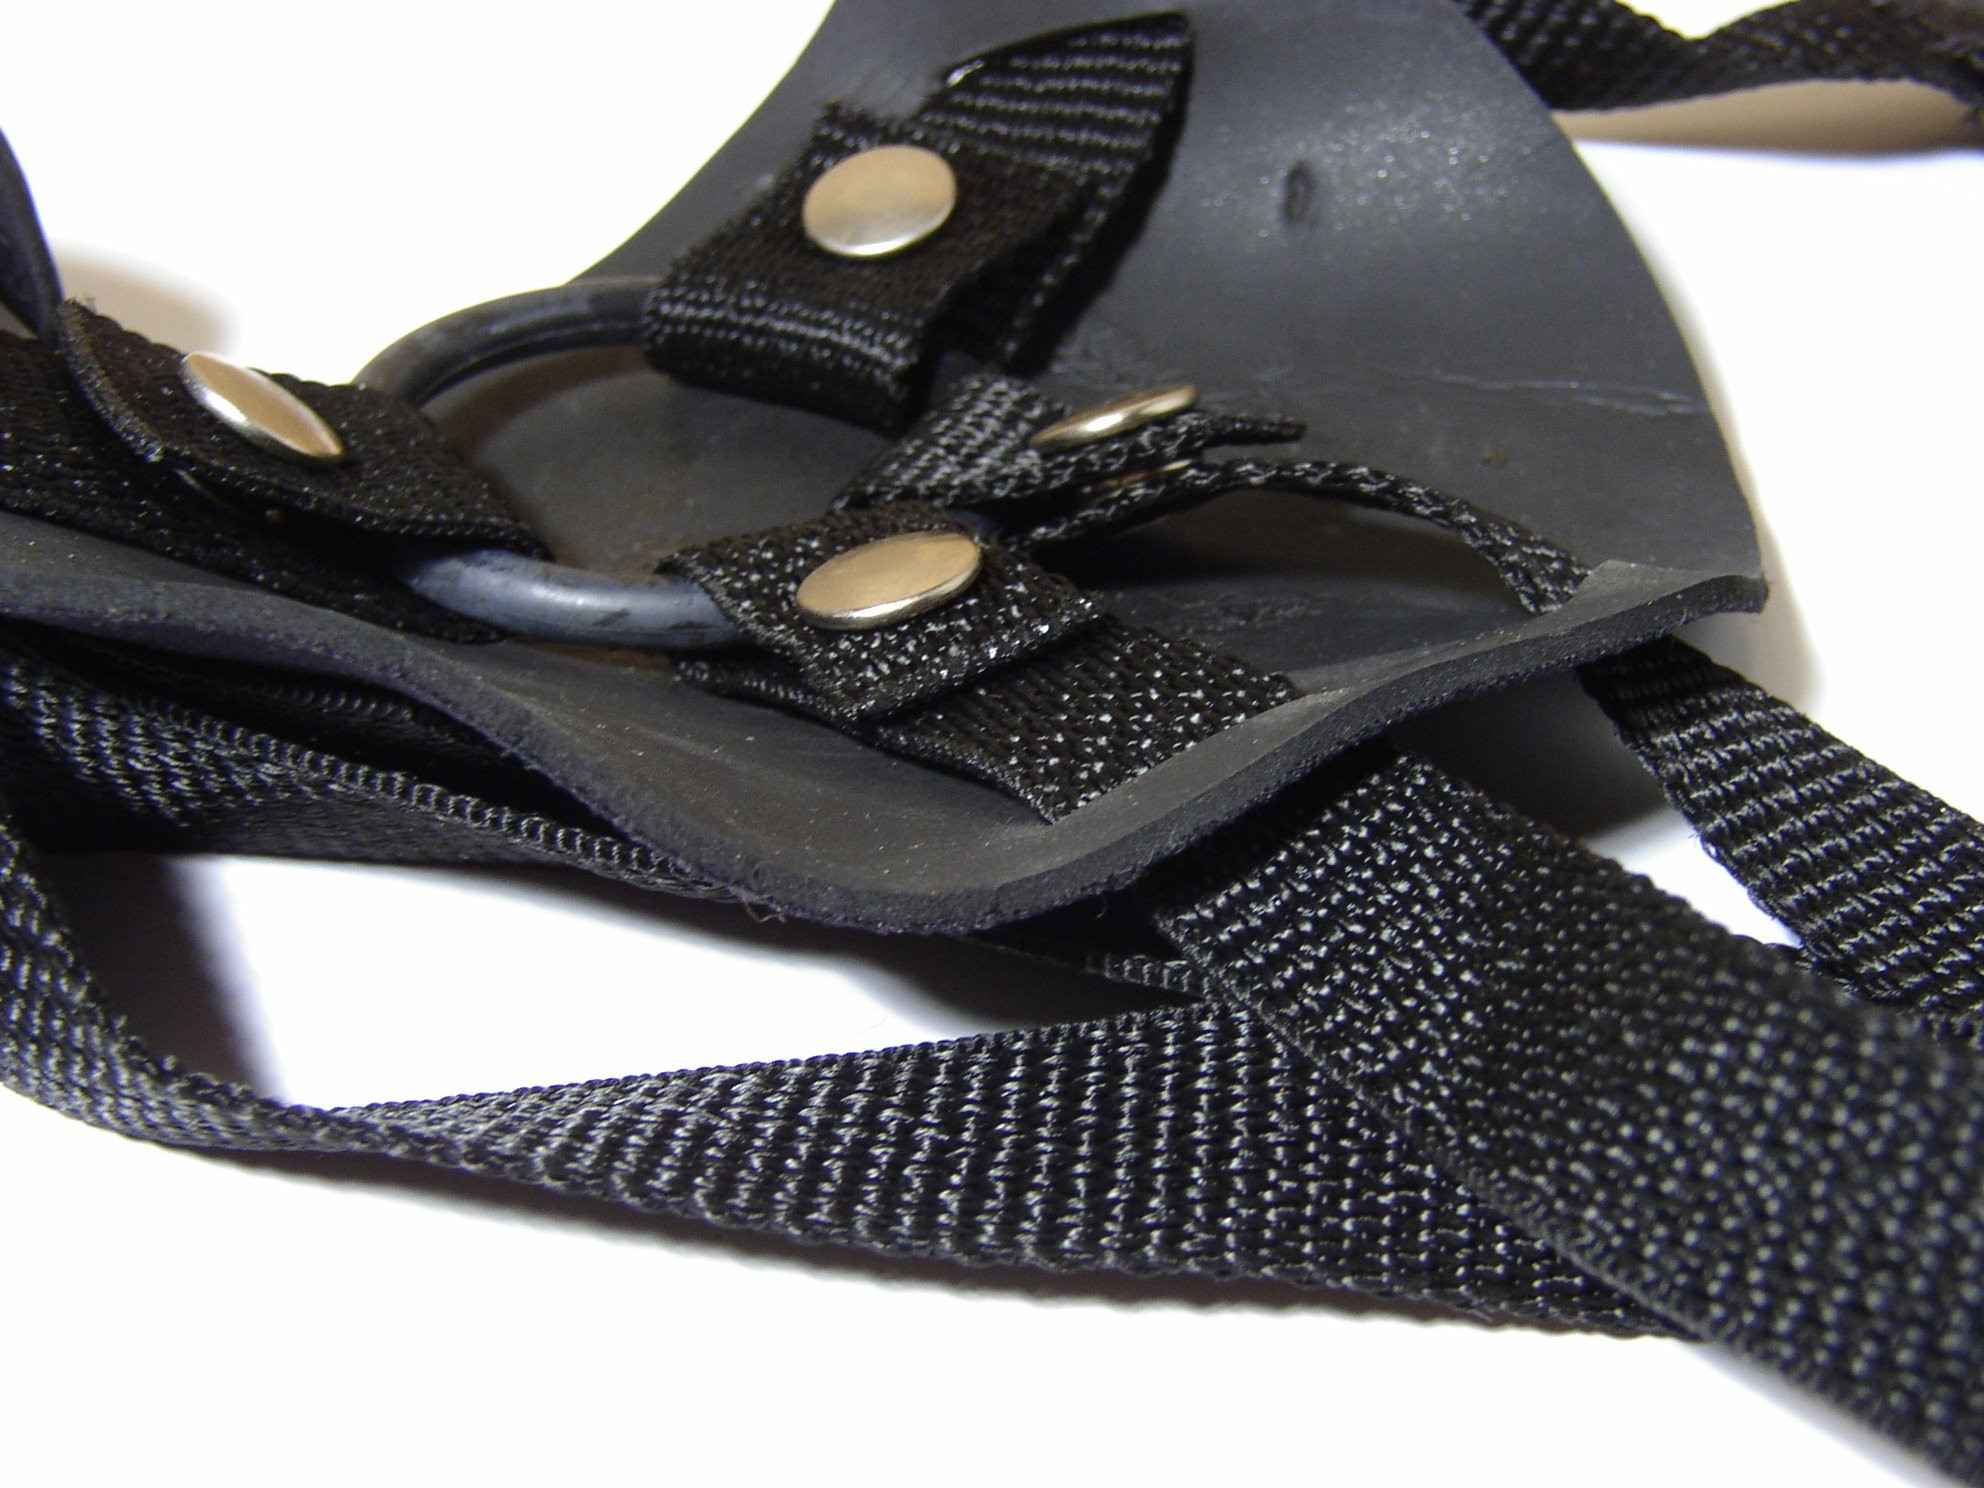 New to strap on sex? Here's what you need to know.